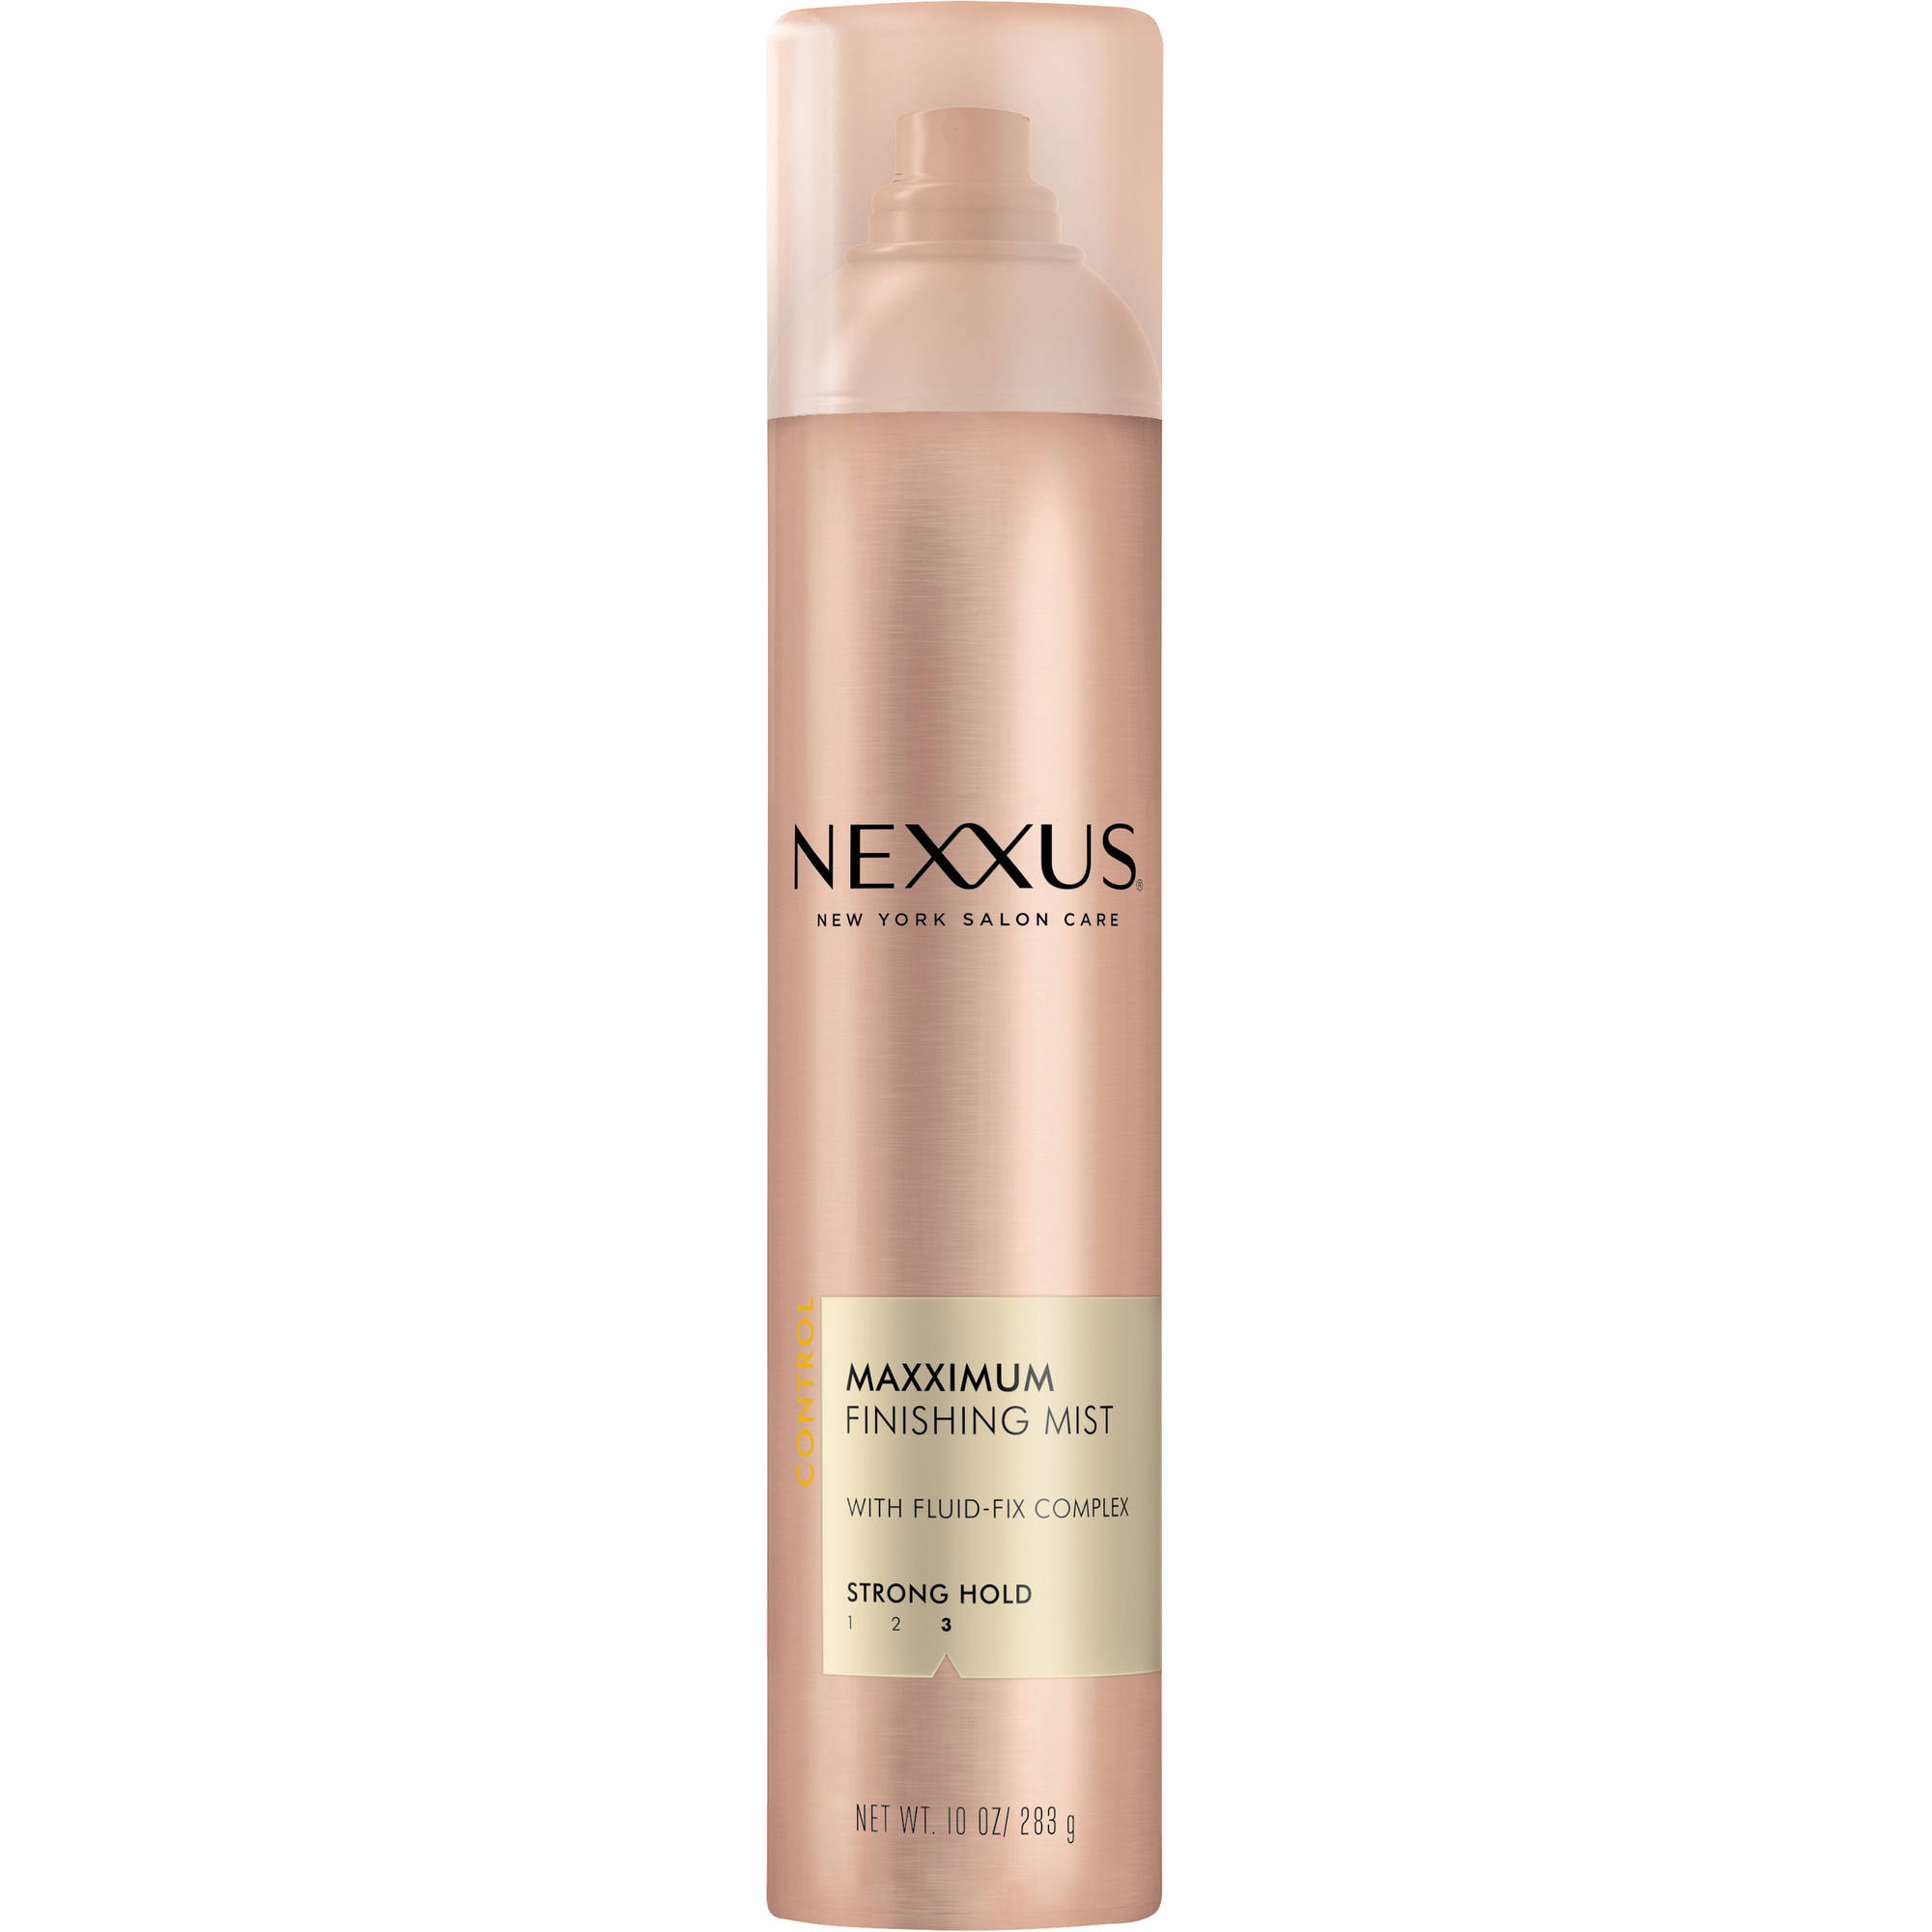 Nexxus Maxximum Finishing Mist, for Control 10 Oz